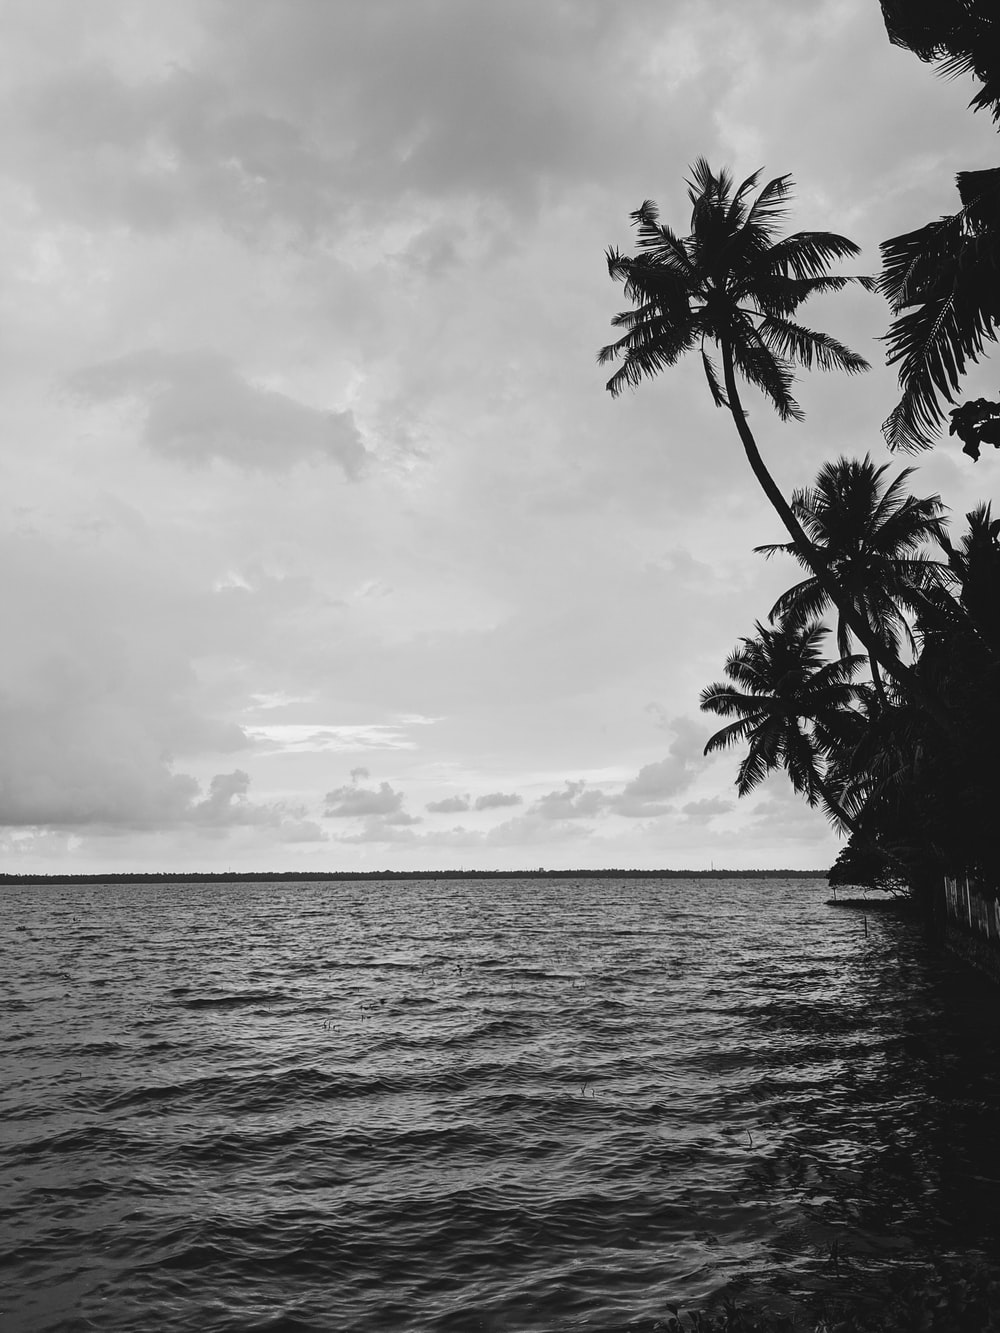 grayscale photography of trees near body of water